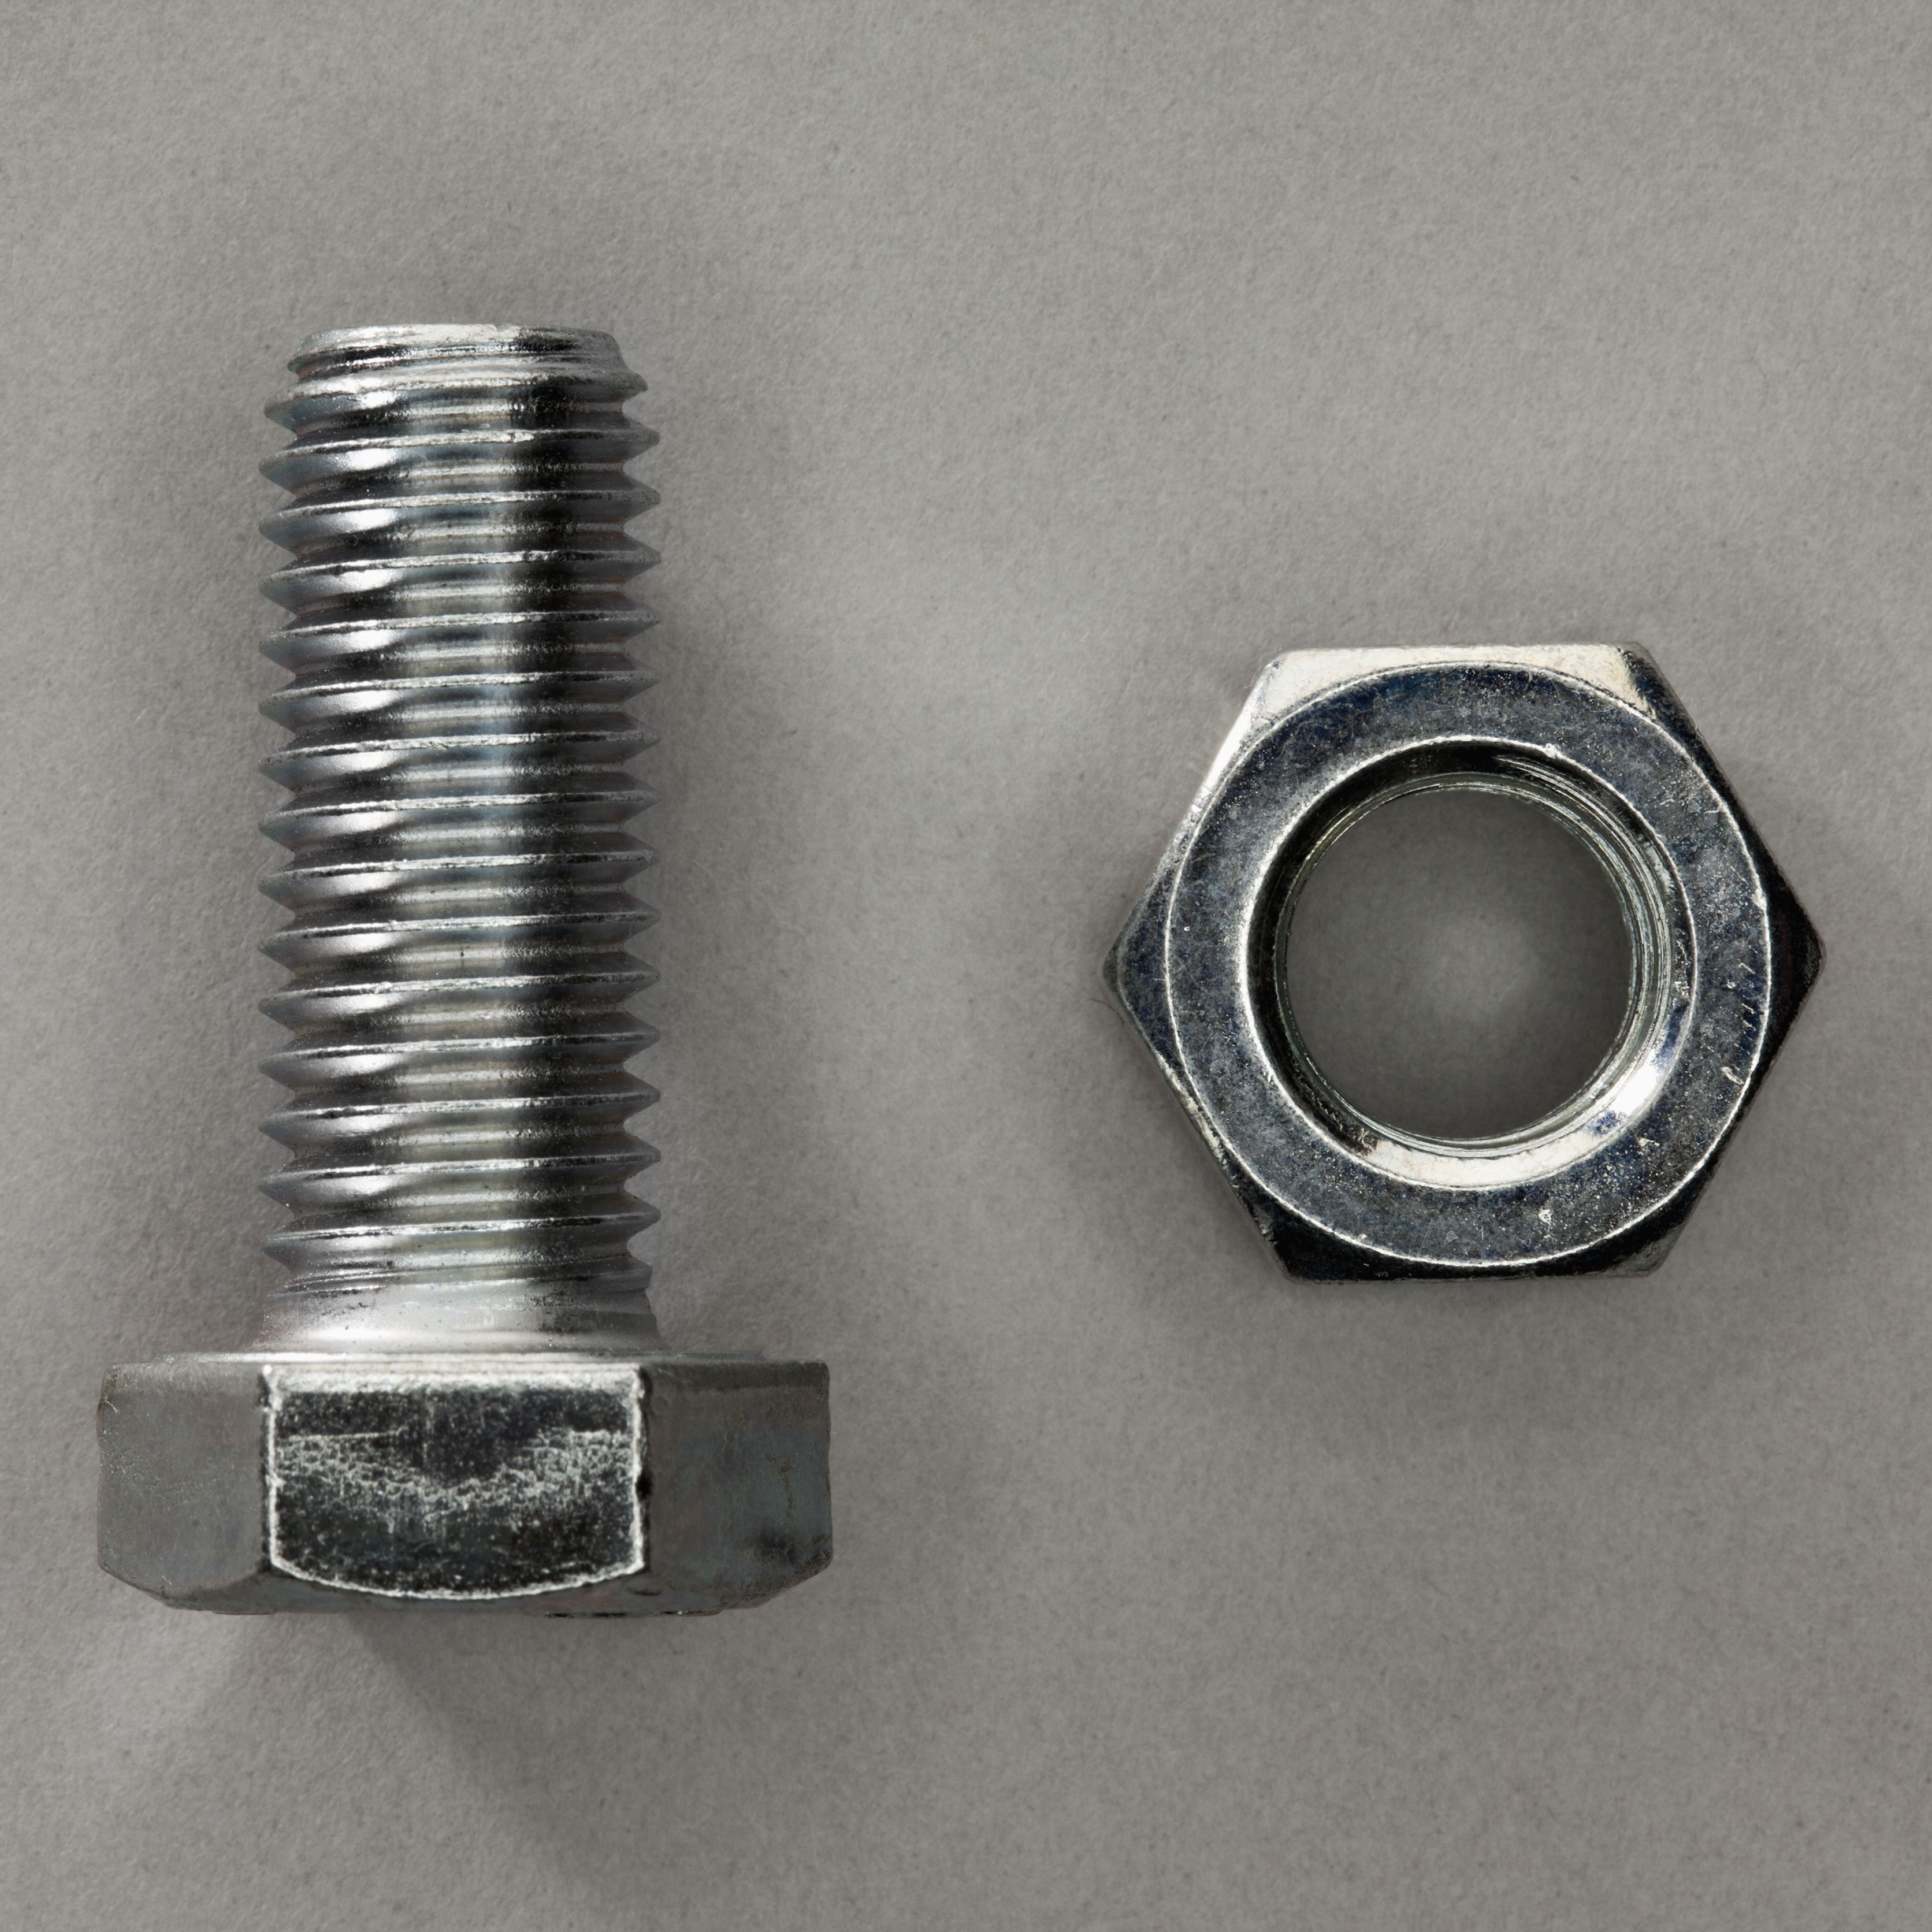 Specialized Uses Of A Reverse Thread Bolt